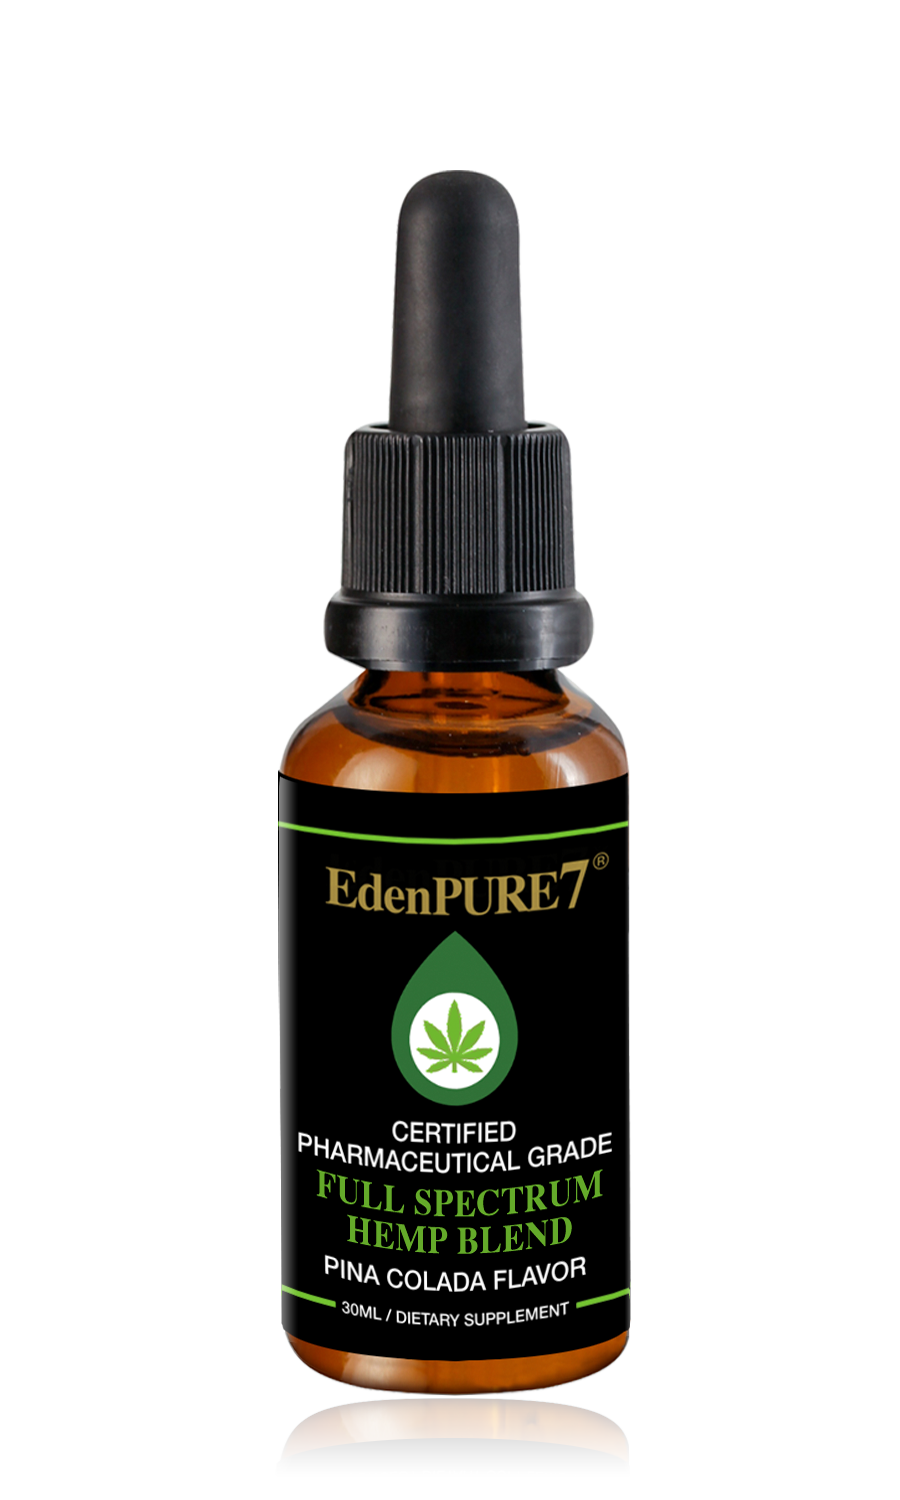 EdenPURE7® Pharmaceutical Grade Hemp Blend